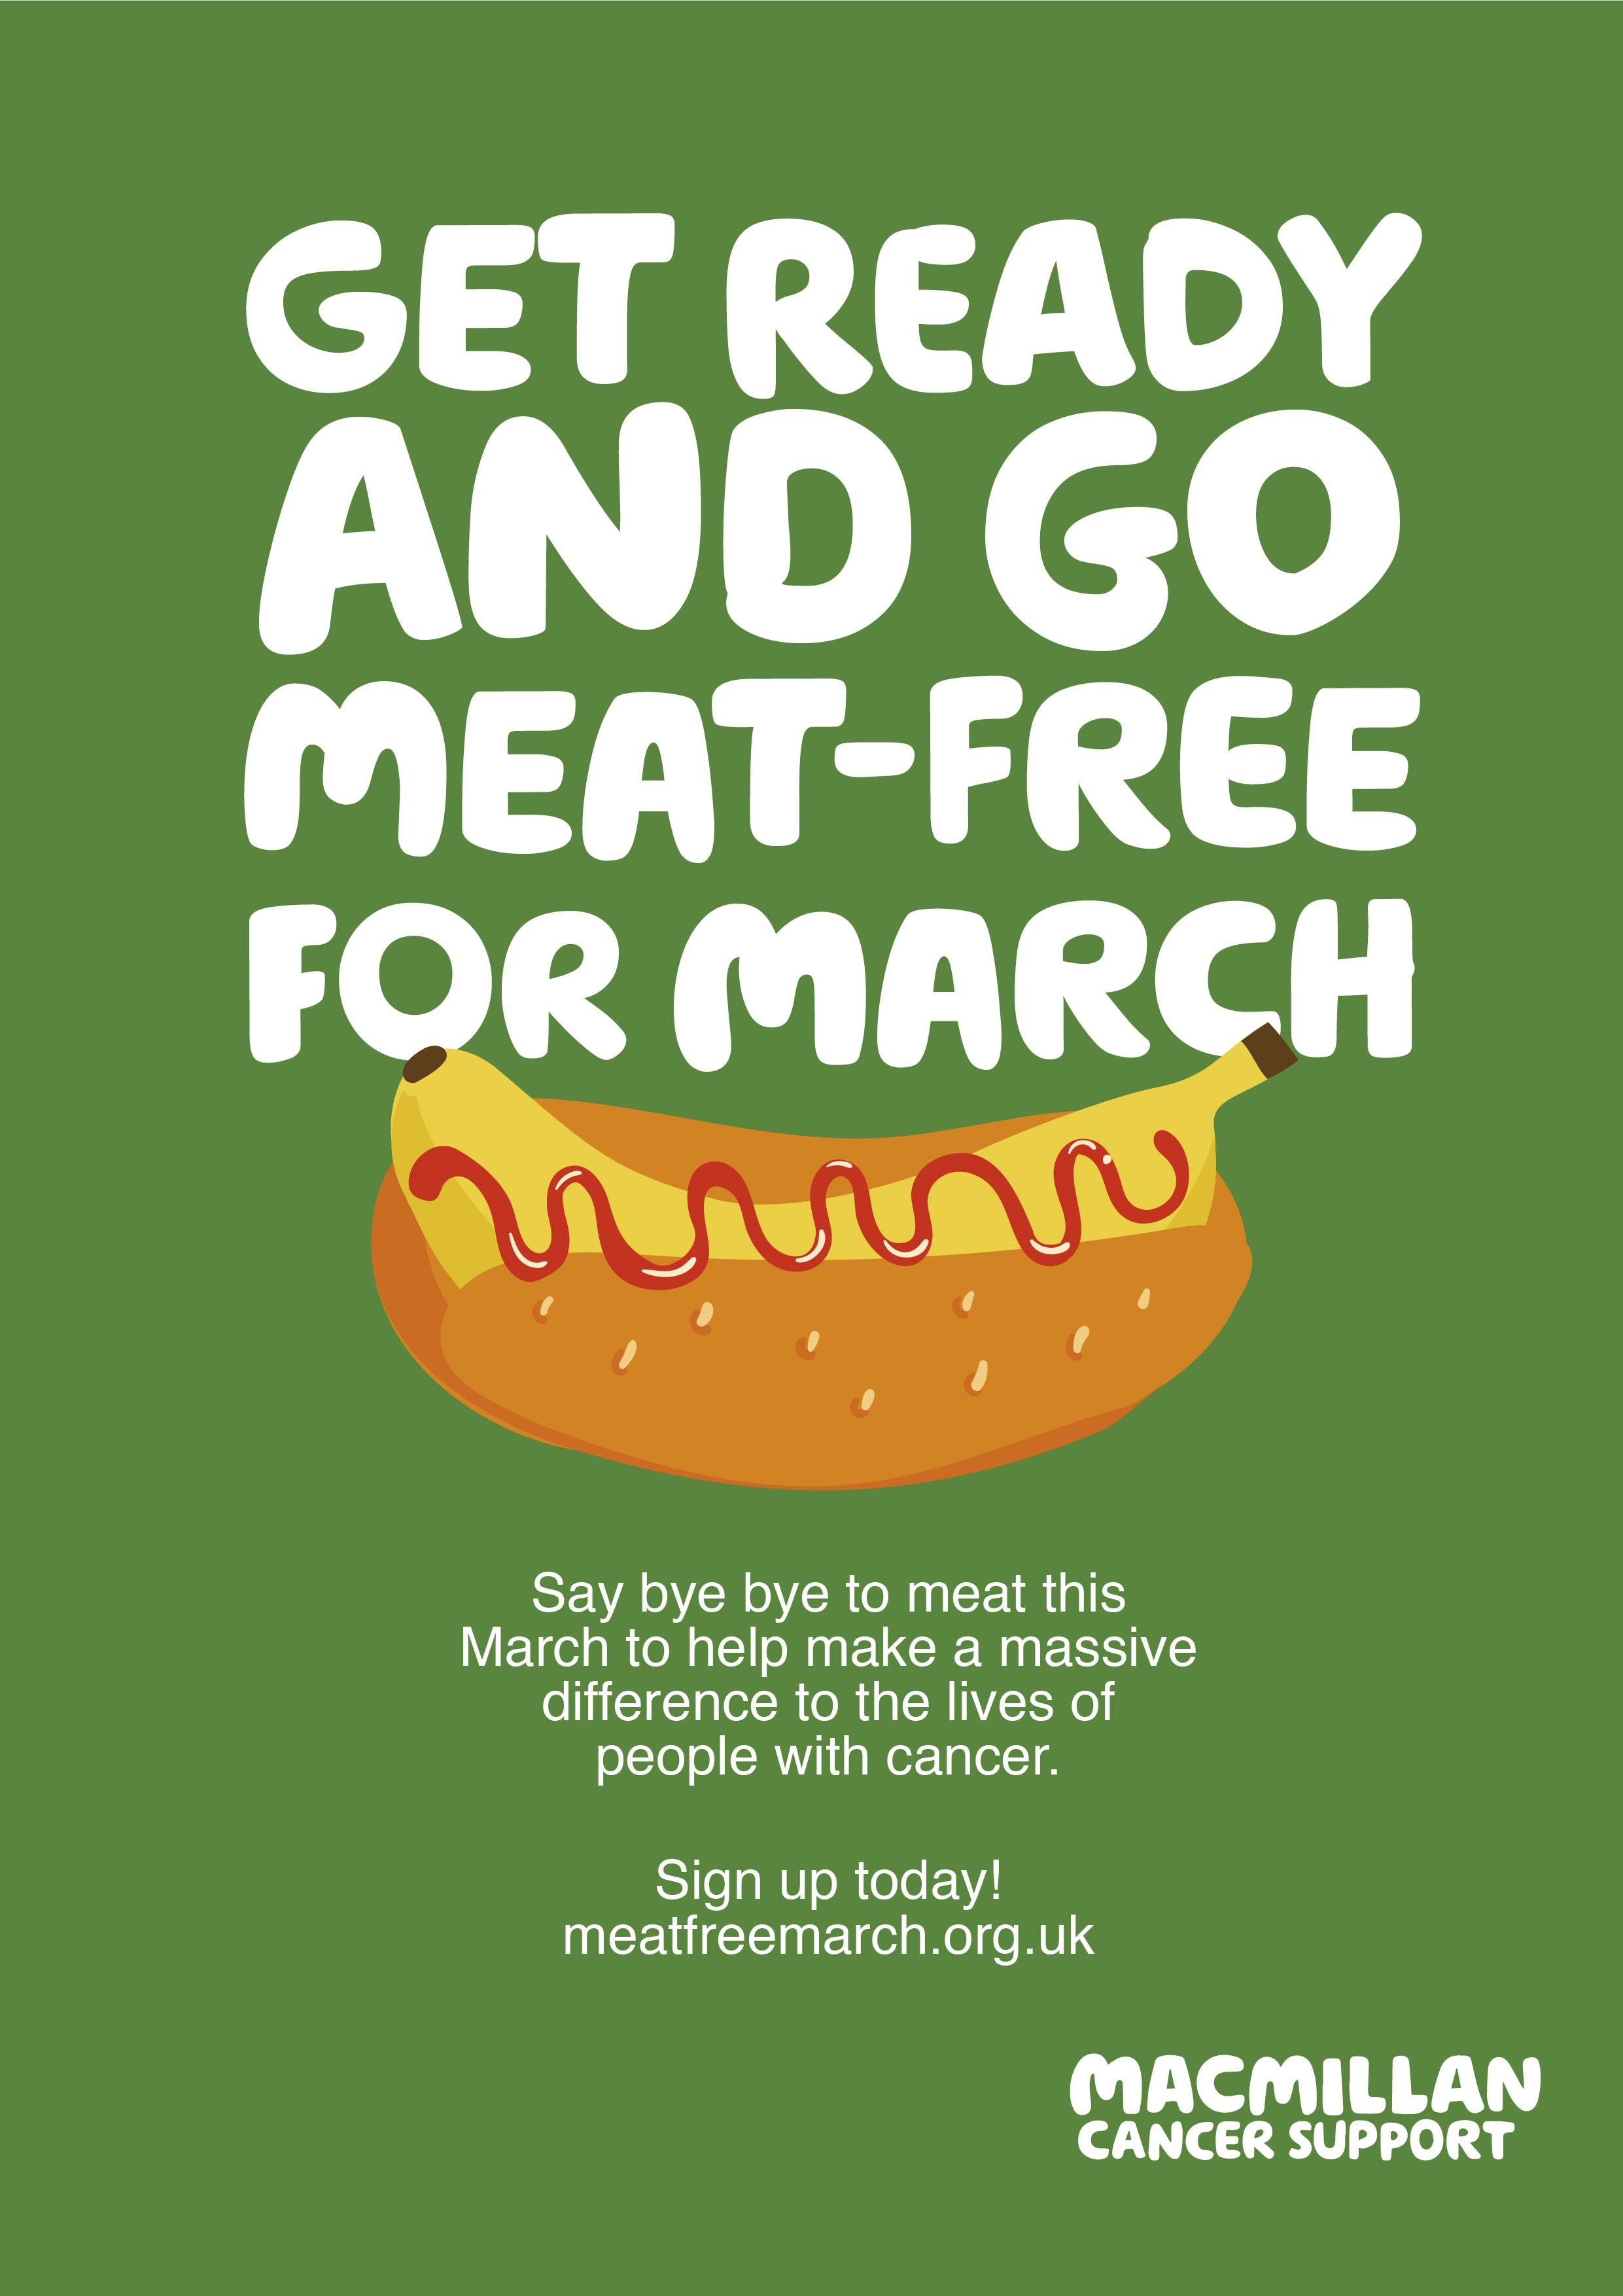 Green background, illustration with banana and a bun text get ready to go meat free march